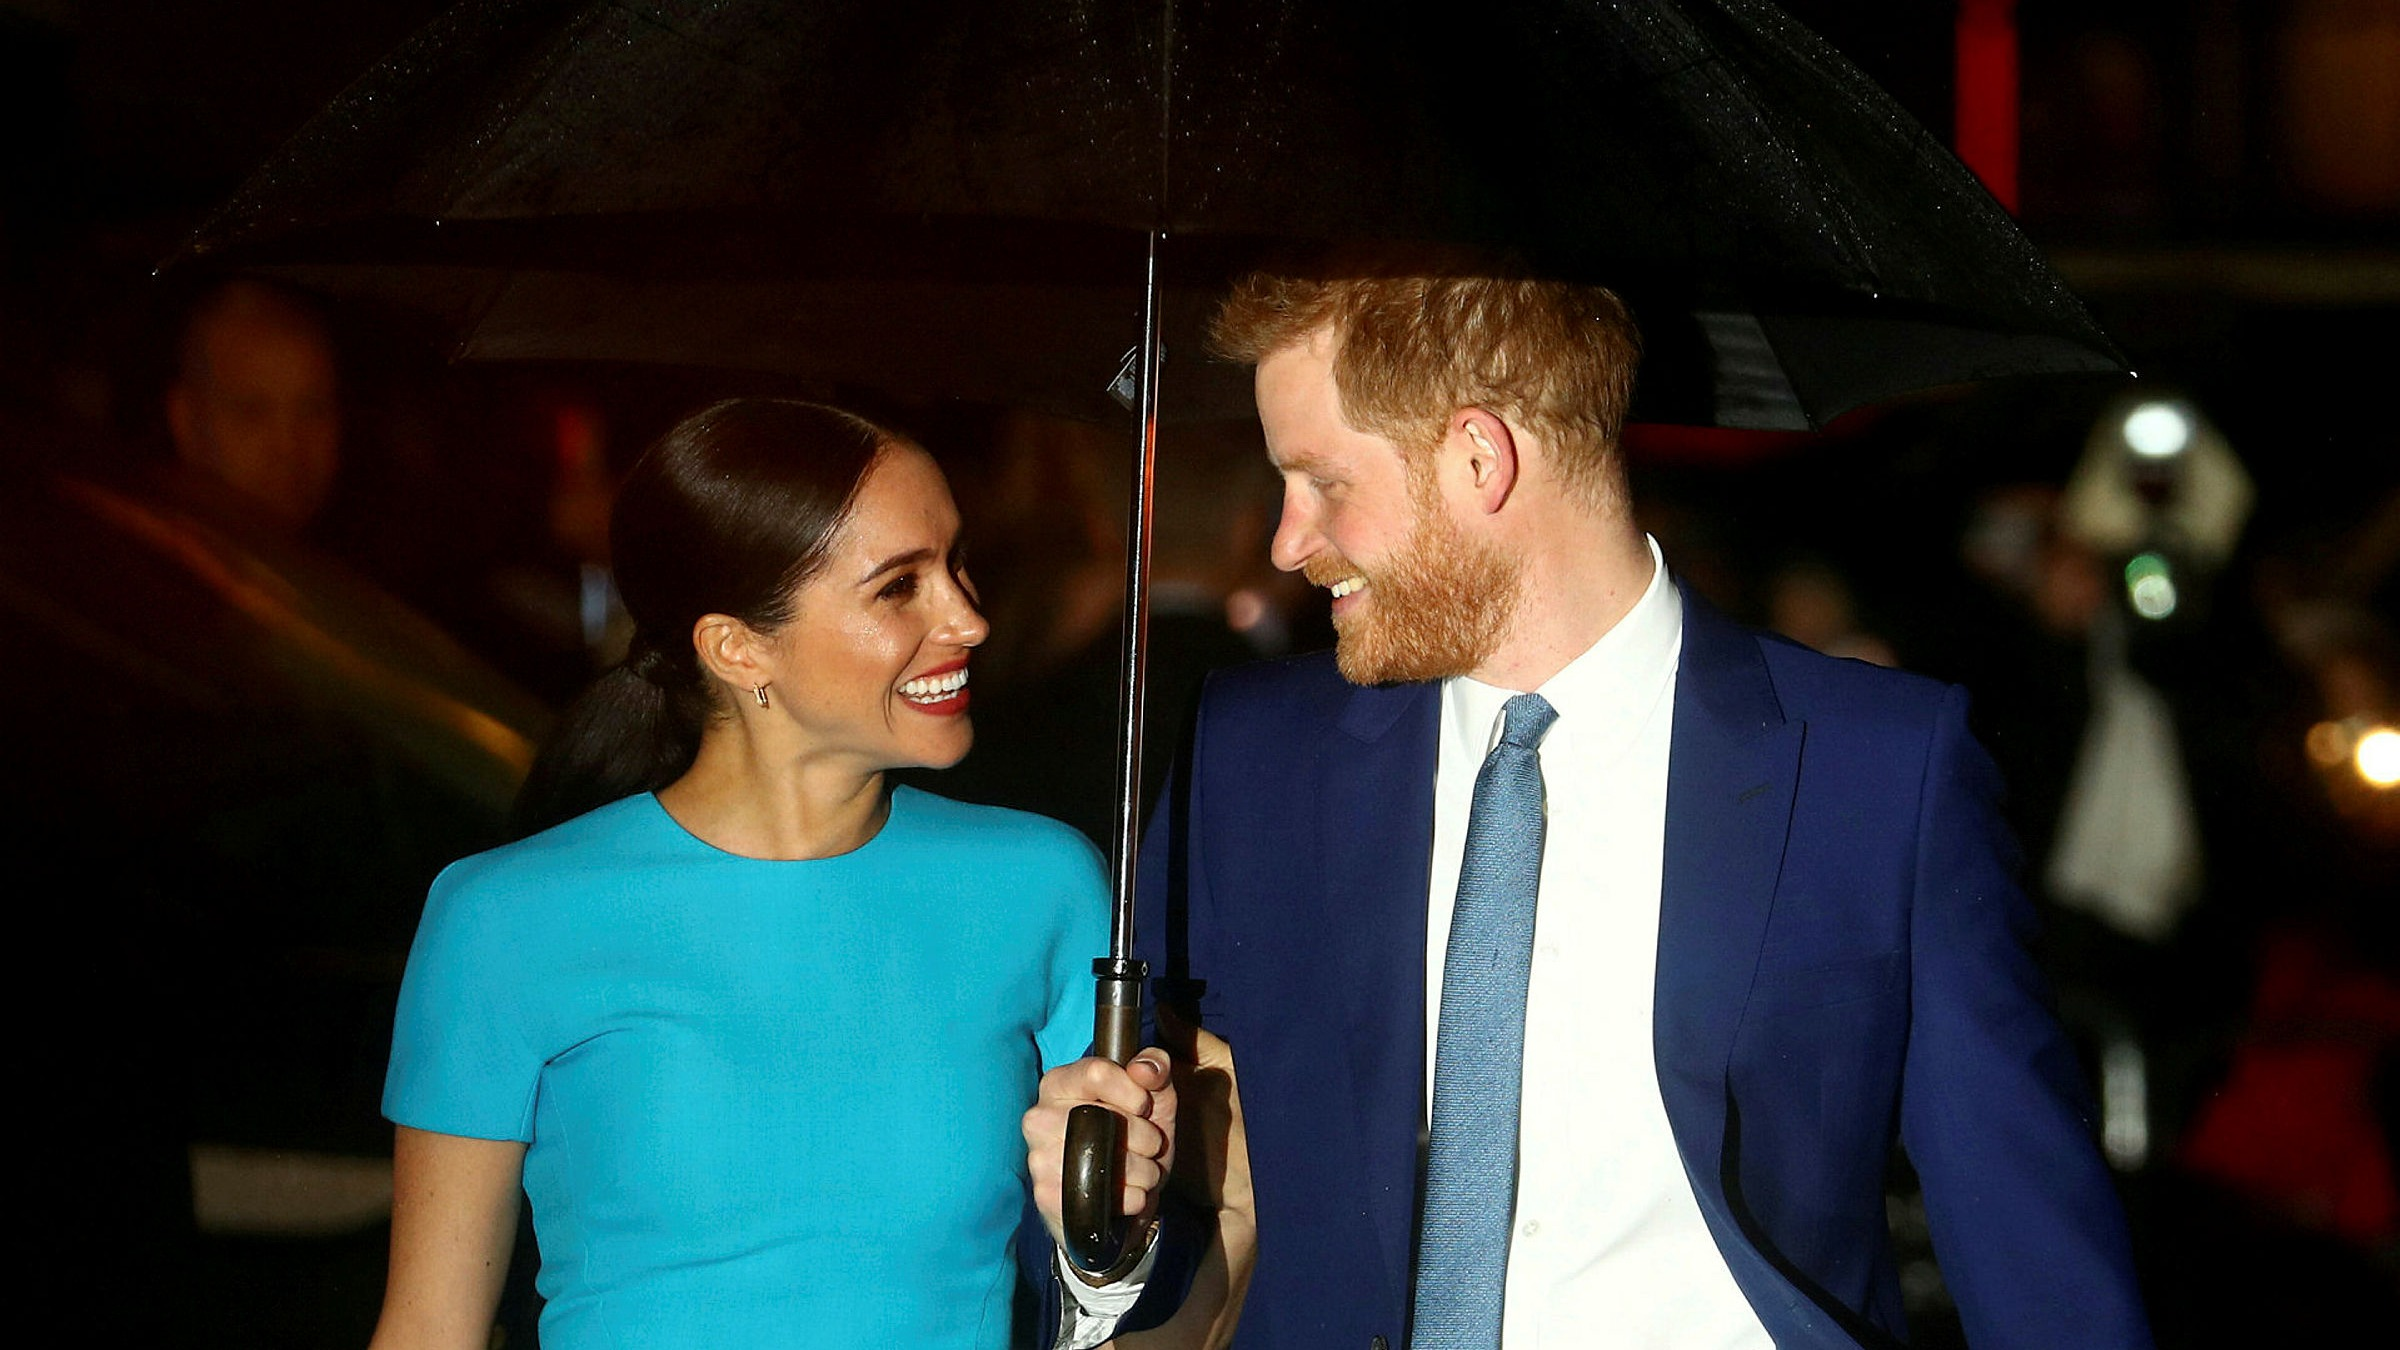 prince harry and meghan markle escalate fight with tabloids financial times prince harry and meghan markle escalate